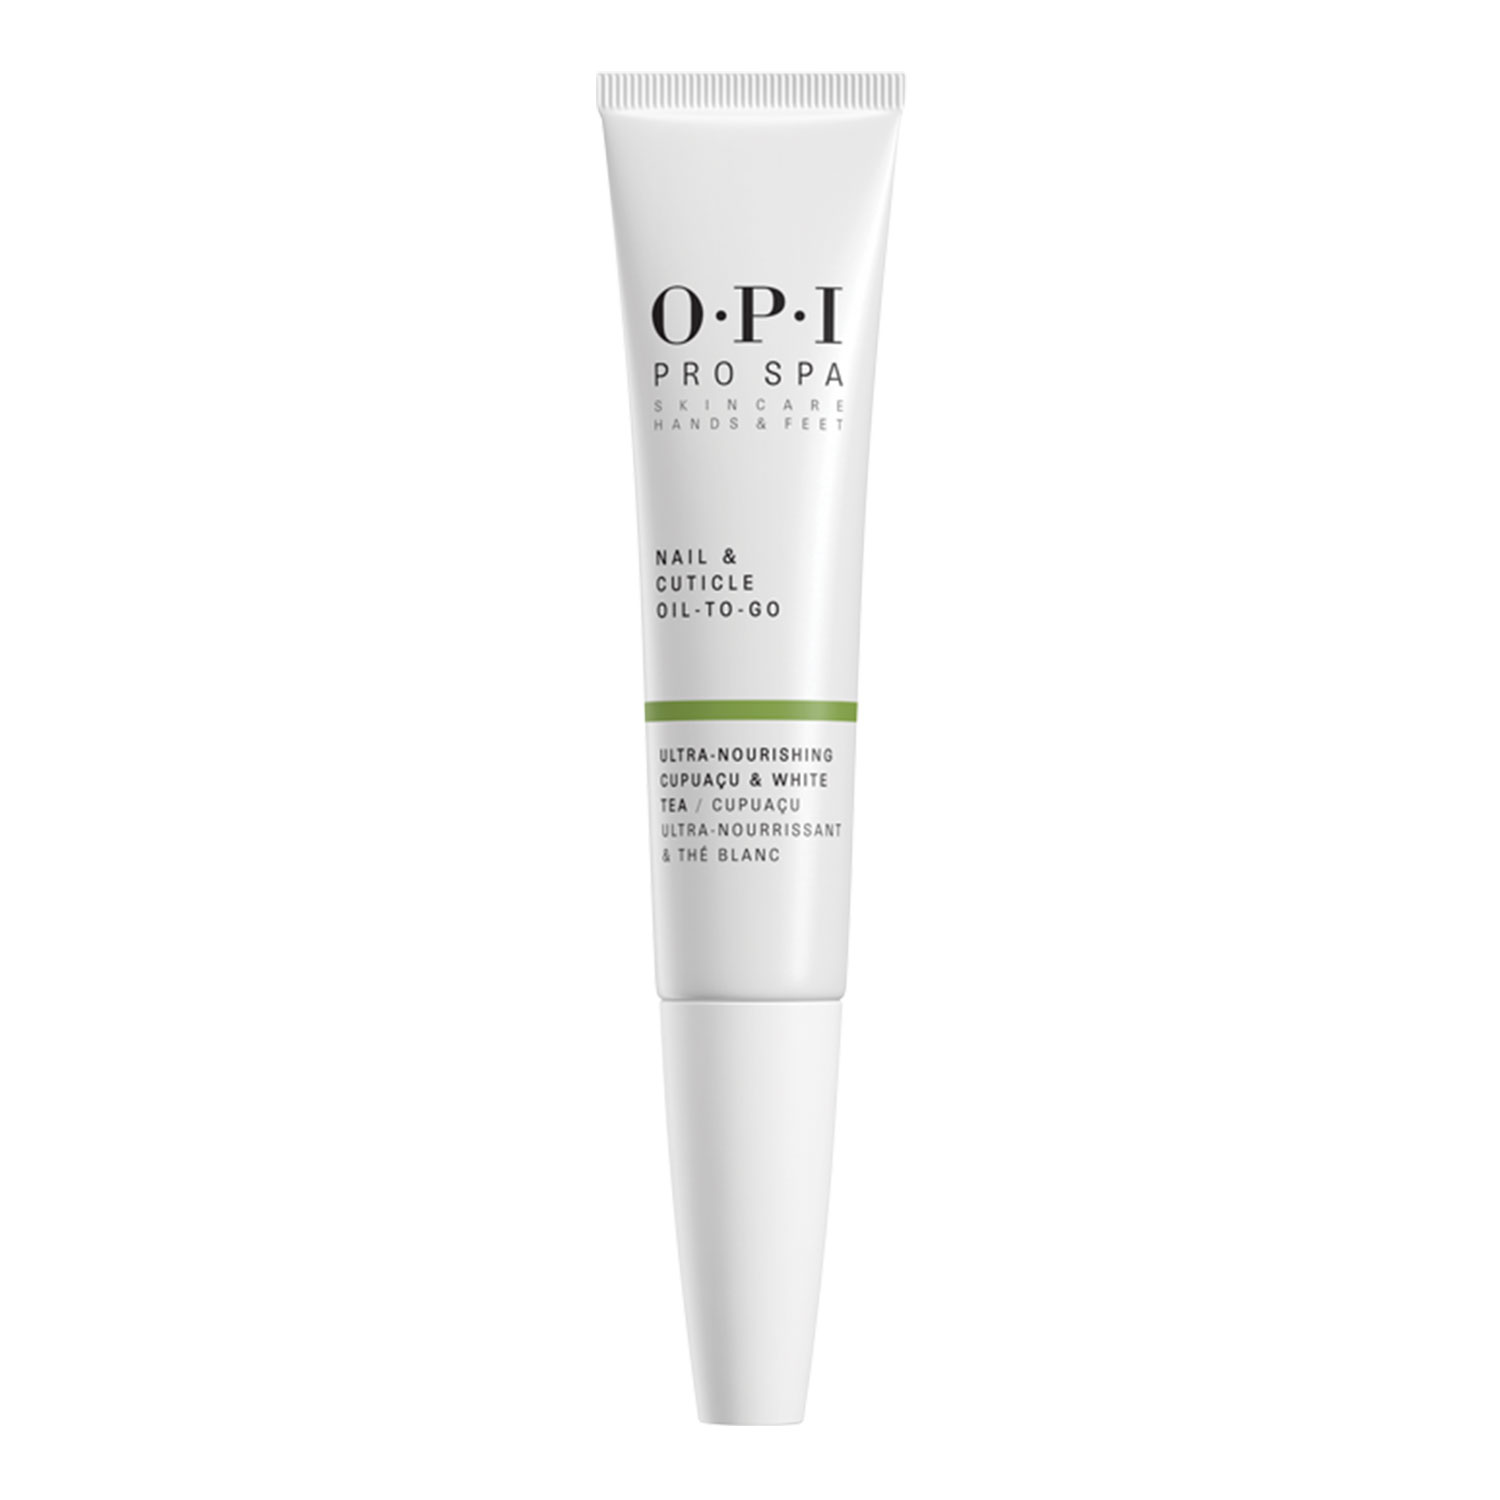 Pro Spa - Nail & Cuticle Oil-To-Go